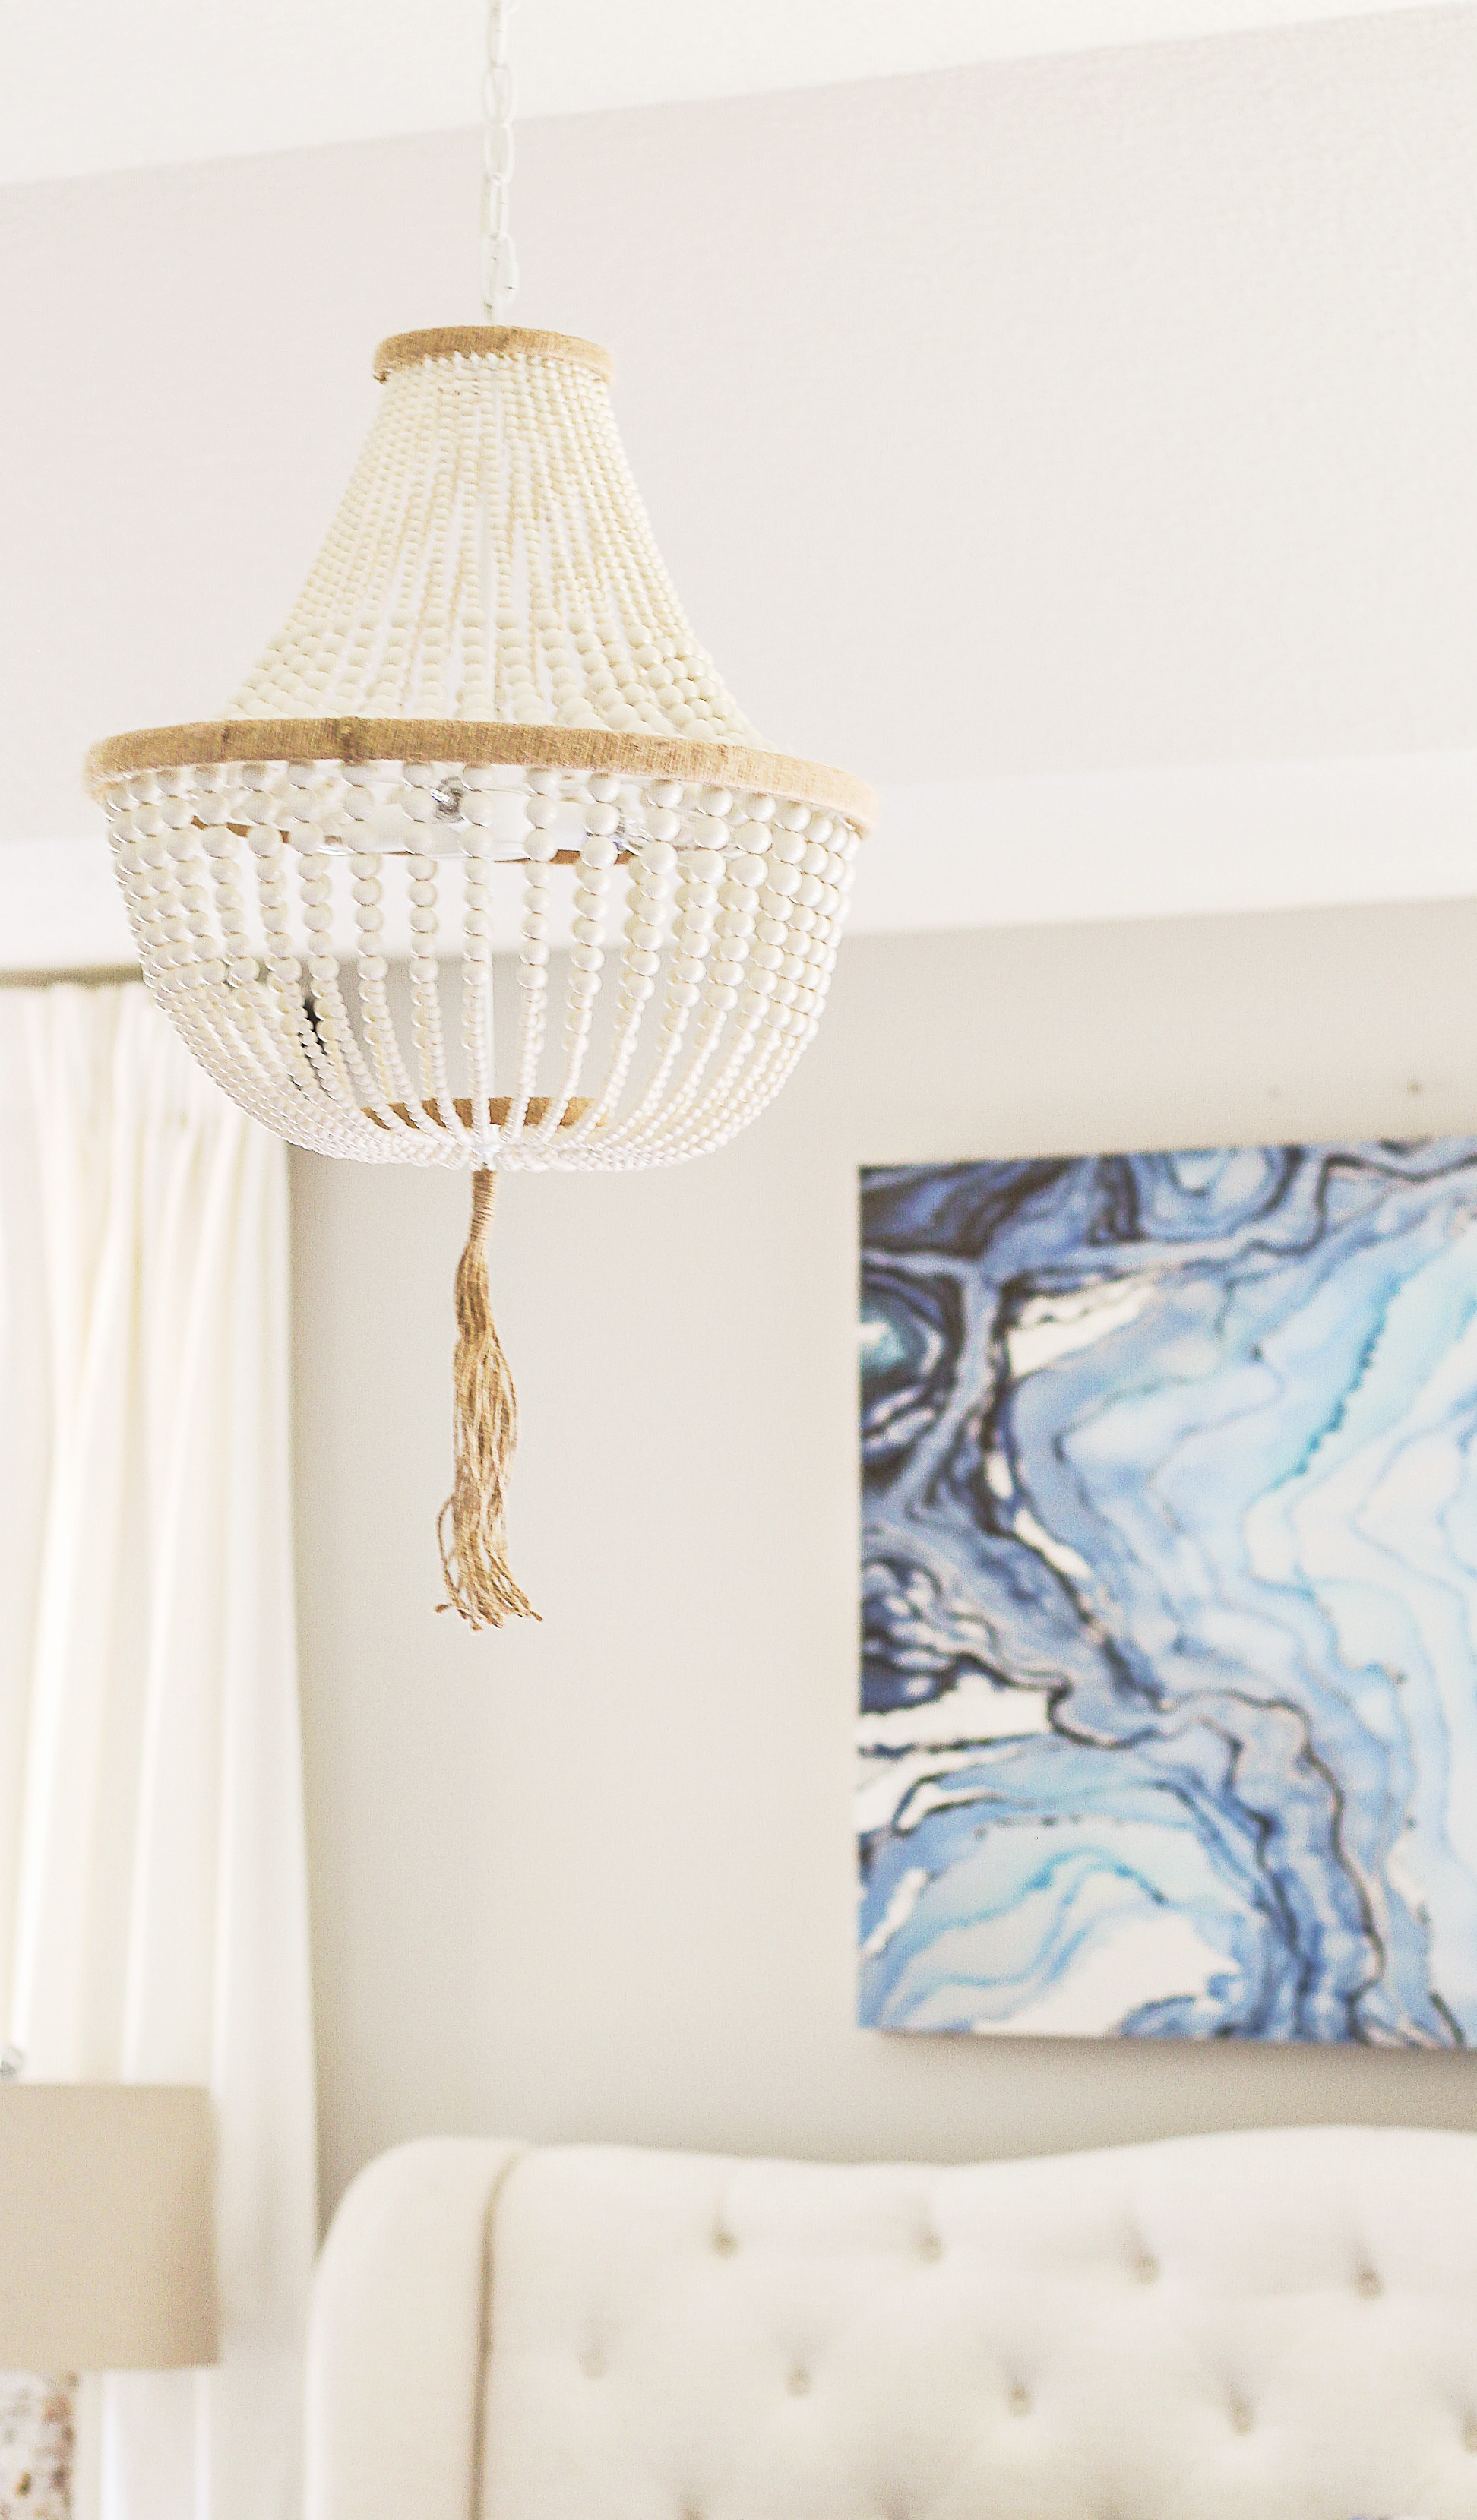 Where to Buy Beaded Chandeliers on the Cheap - Affordable ...